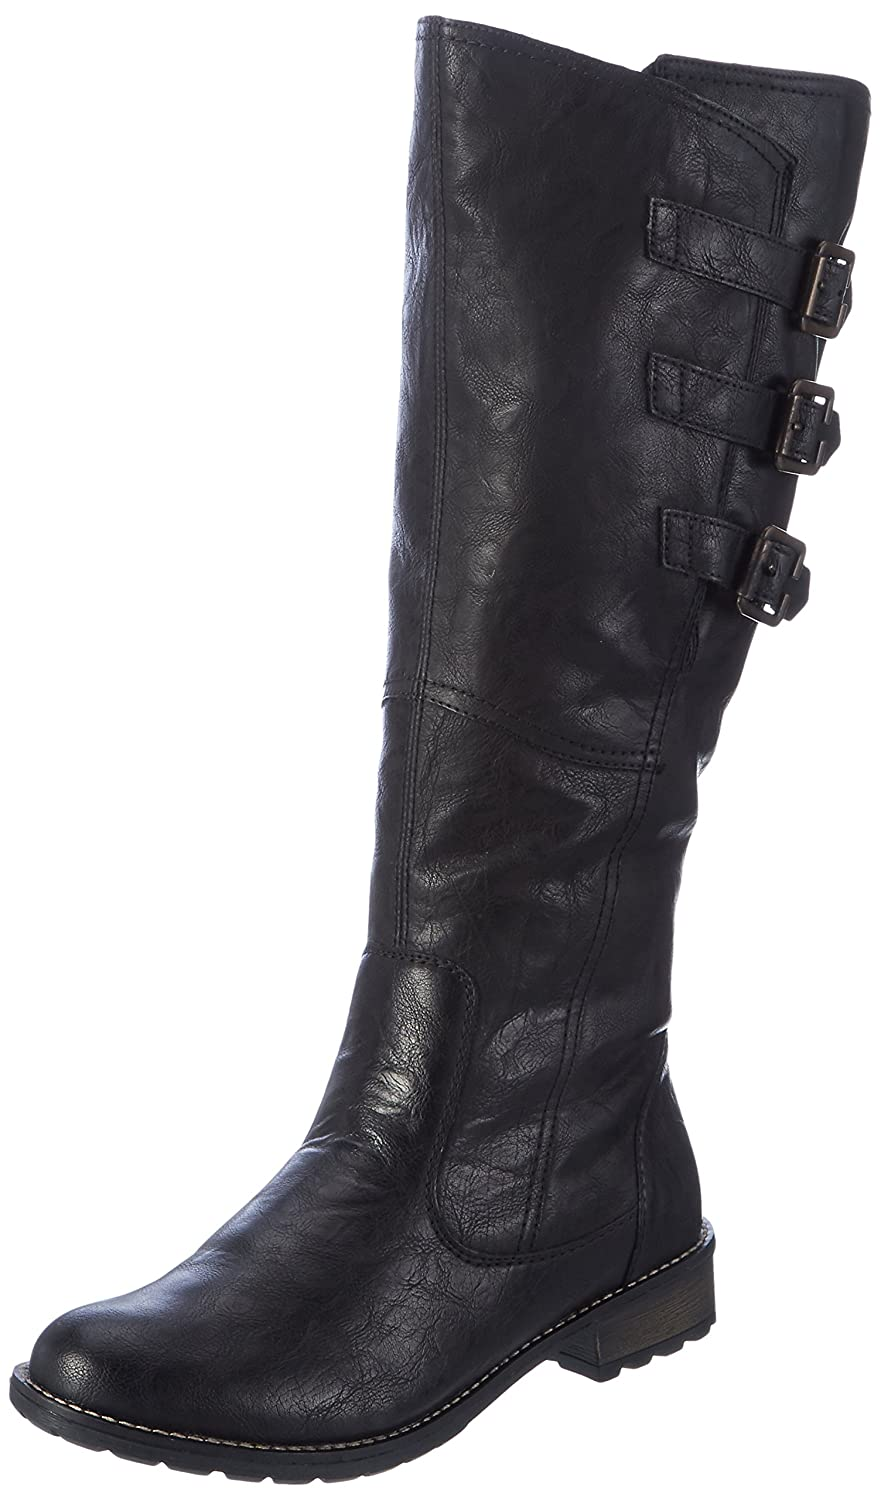 tout neuf grossiste en soldes Remonte Remonte, Womens Boots